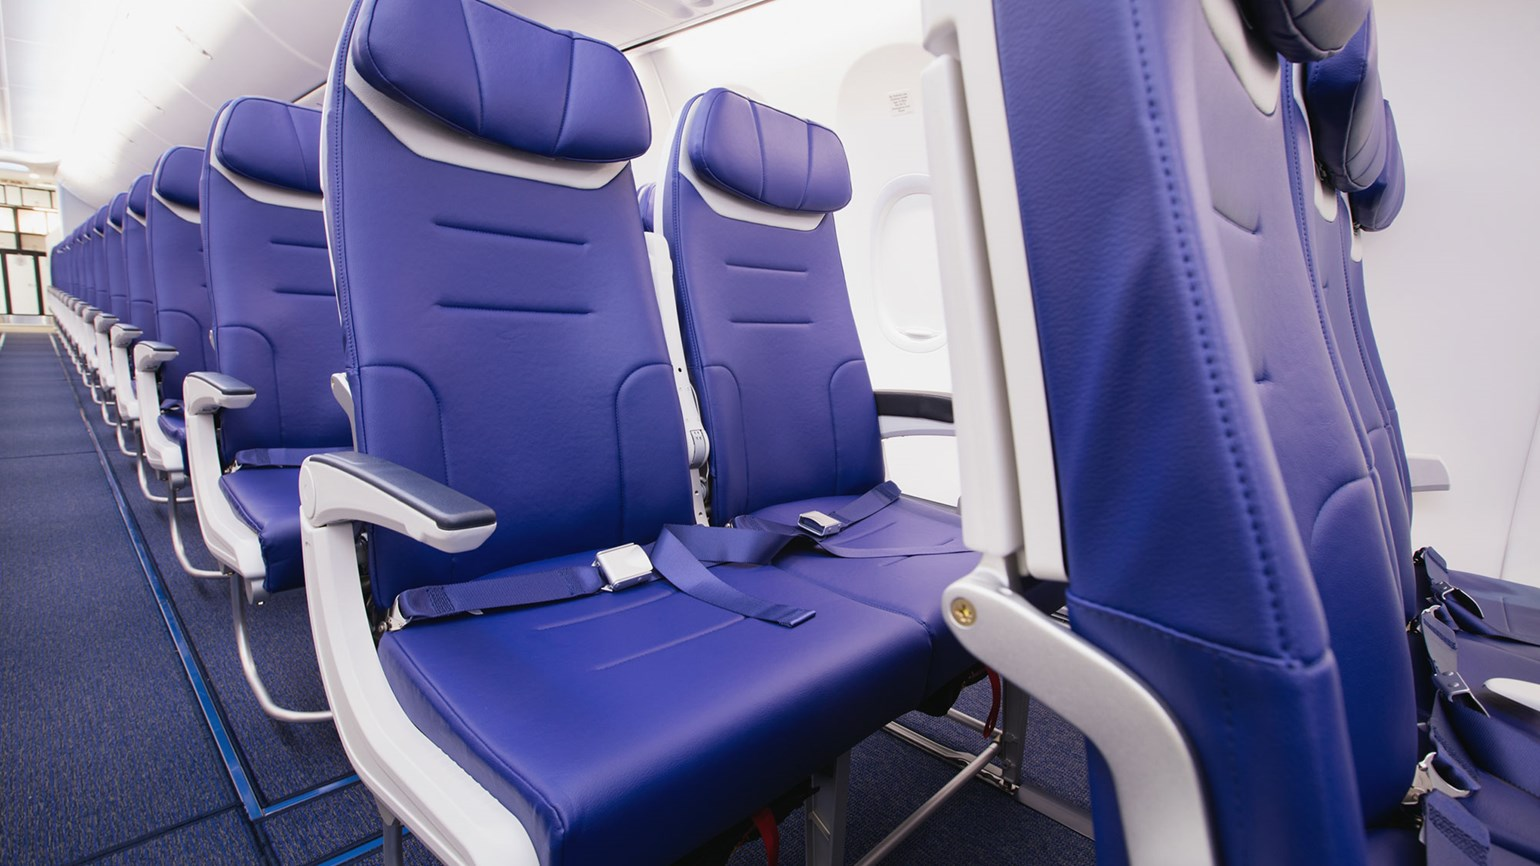 Some Southwest Planes Getting New Seats Travel Weekly